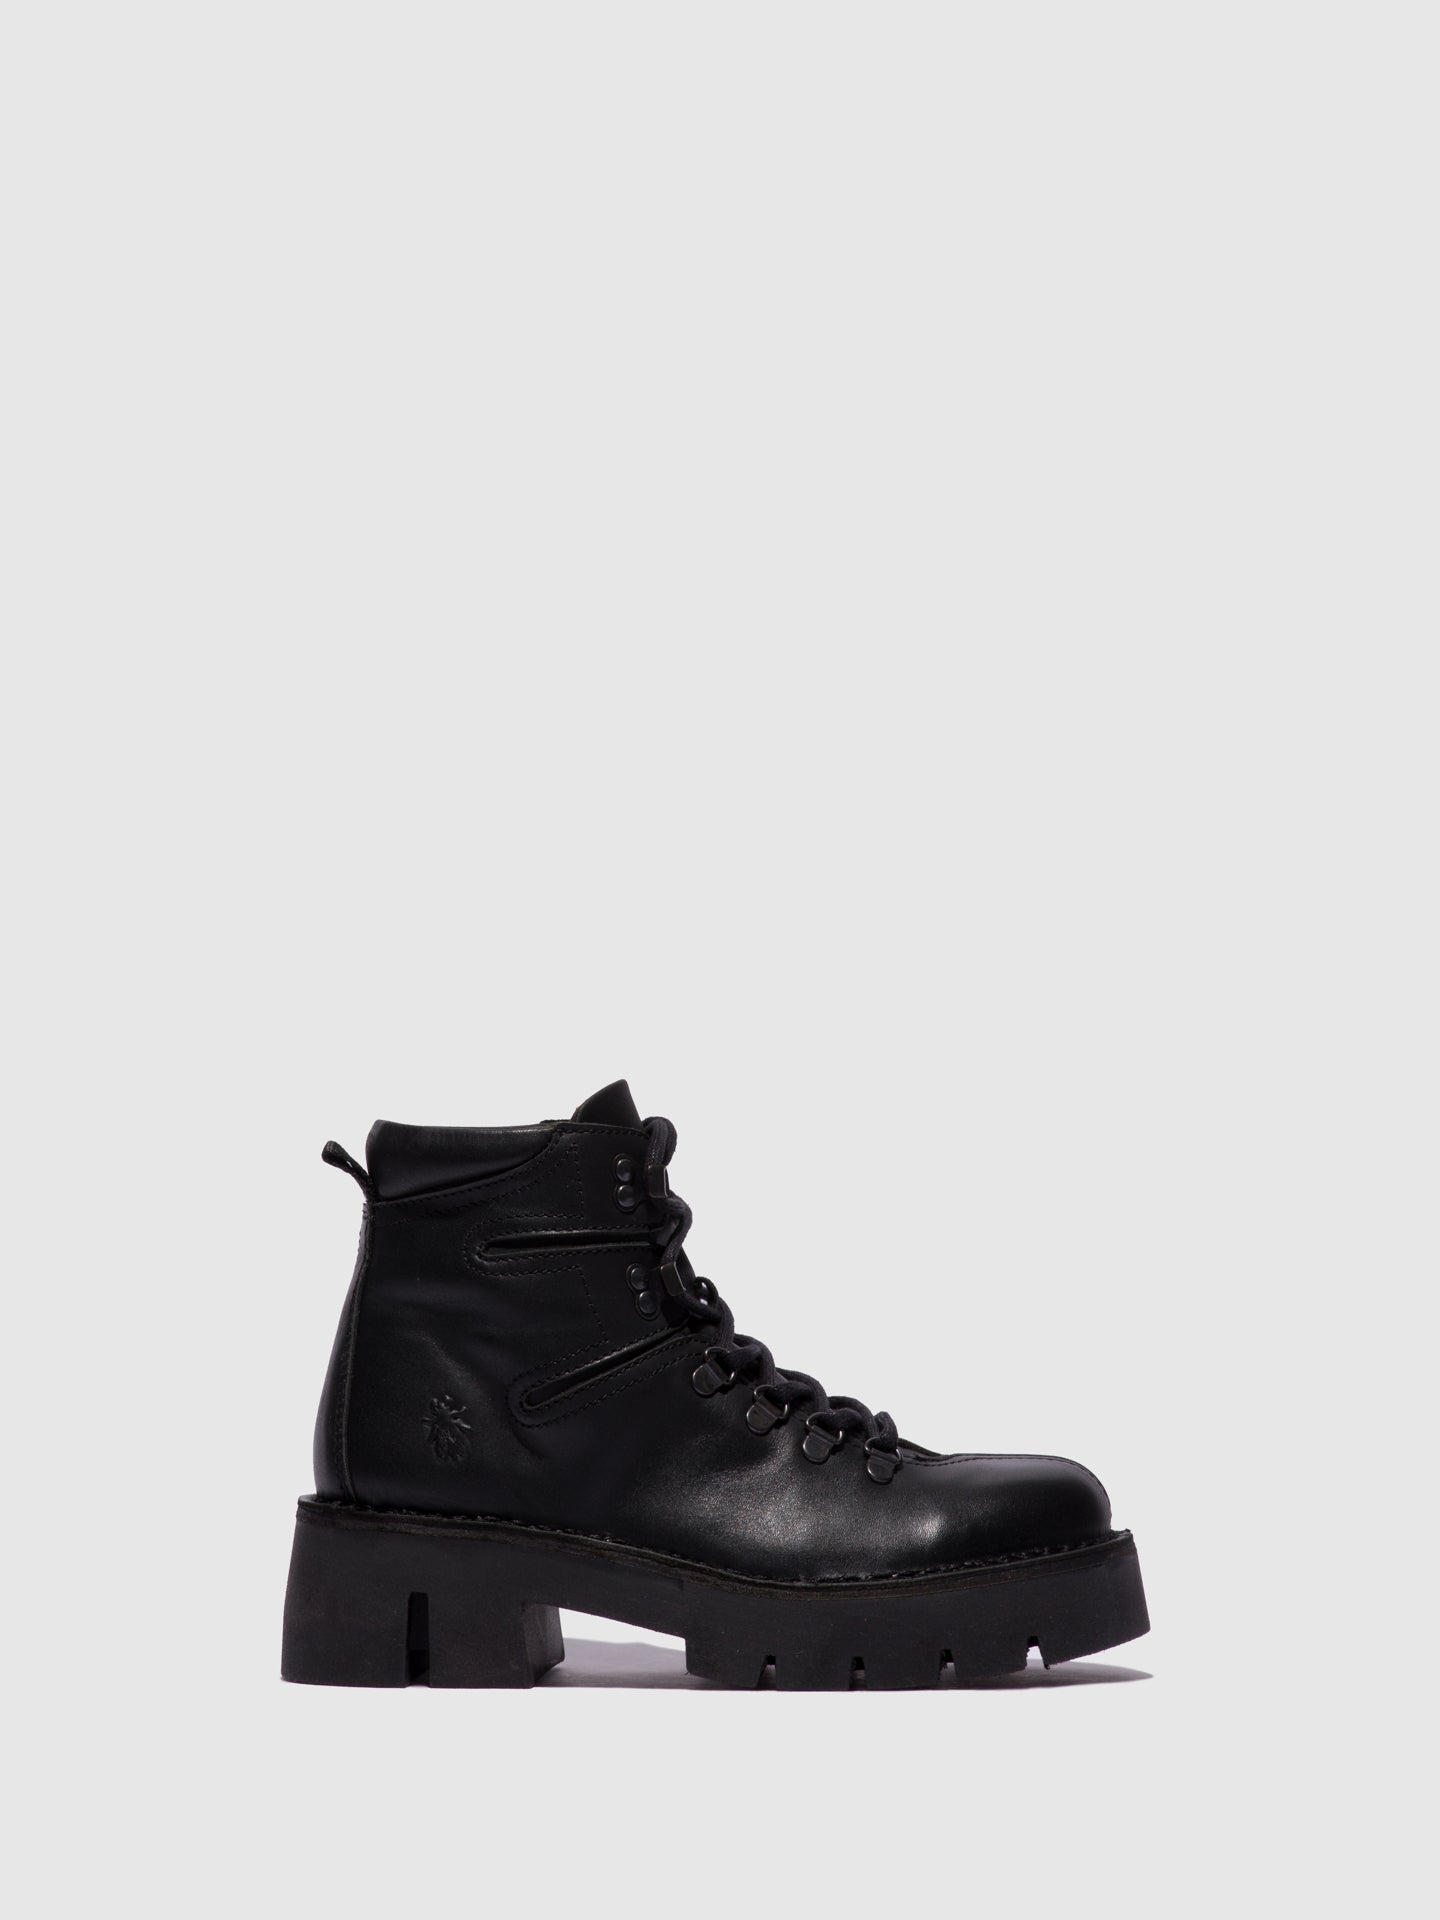 Fly London Lace-up Ankle Boots BERI000FLY BLACK LEATHER